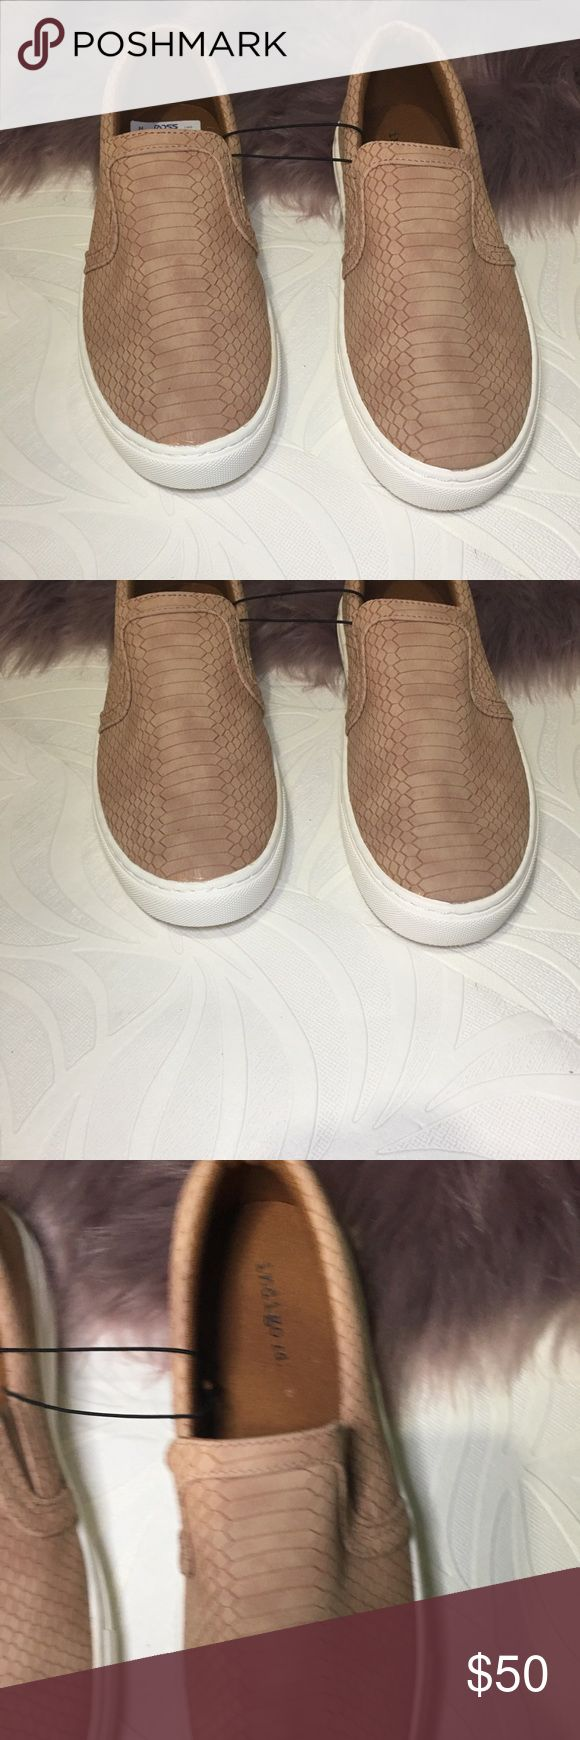 Indigo Women sneaker Size 7 1/2 new with tags never worn, perfect for spring! Shoes are so comfy and chic. Color is cream  *** I love offers**** Indigo Shoes Sneakers